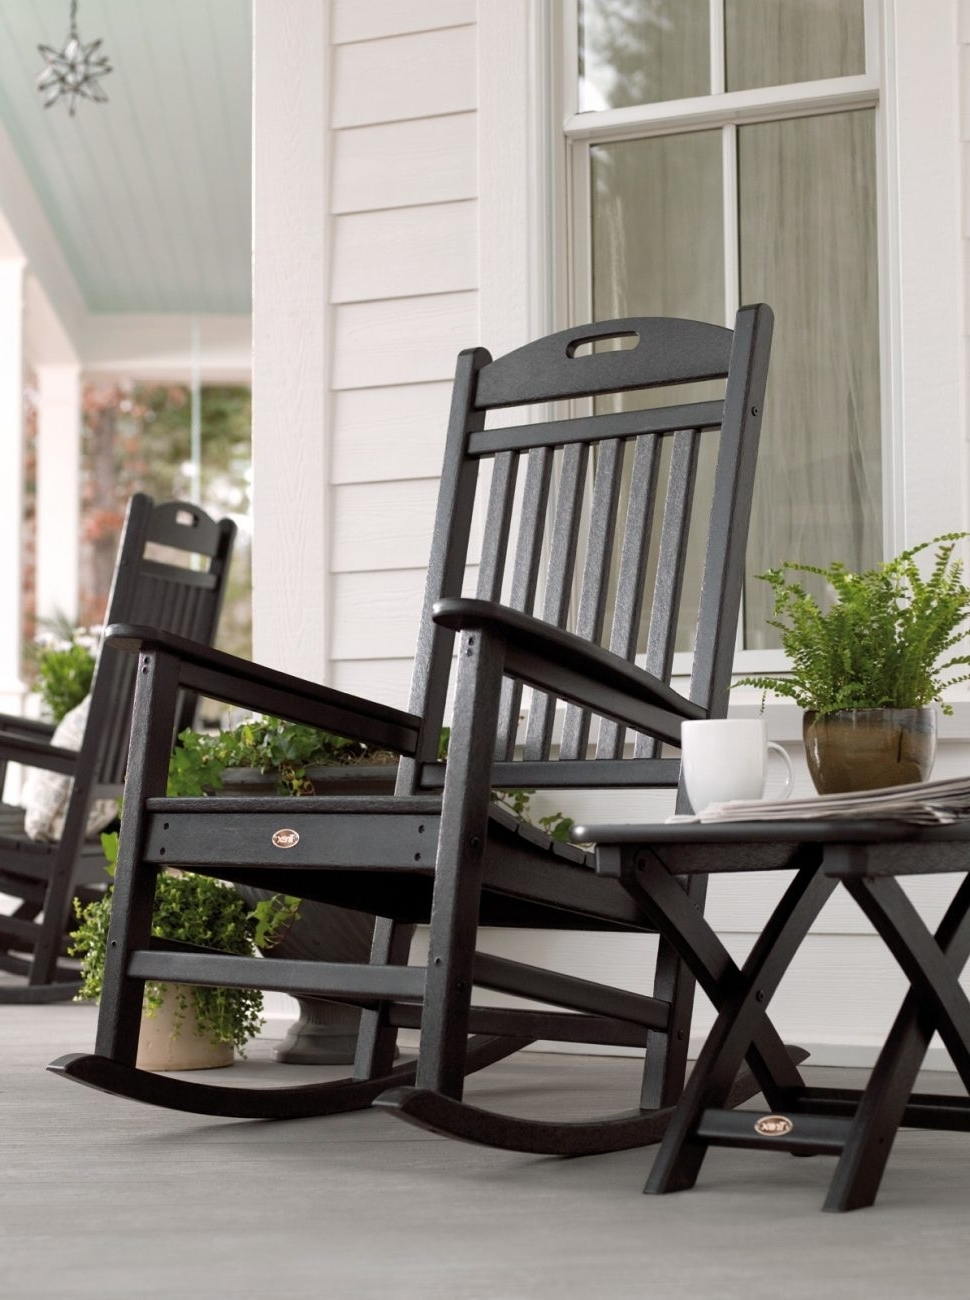 Popular Patio Rocking Chairs Sets With Patio & Garden : Beautiful Outdoor Rocking Chairs Cracker' Vinyl (View 19 of 20)